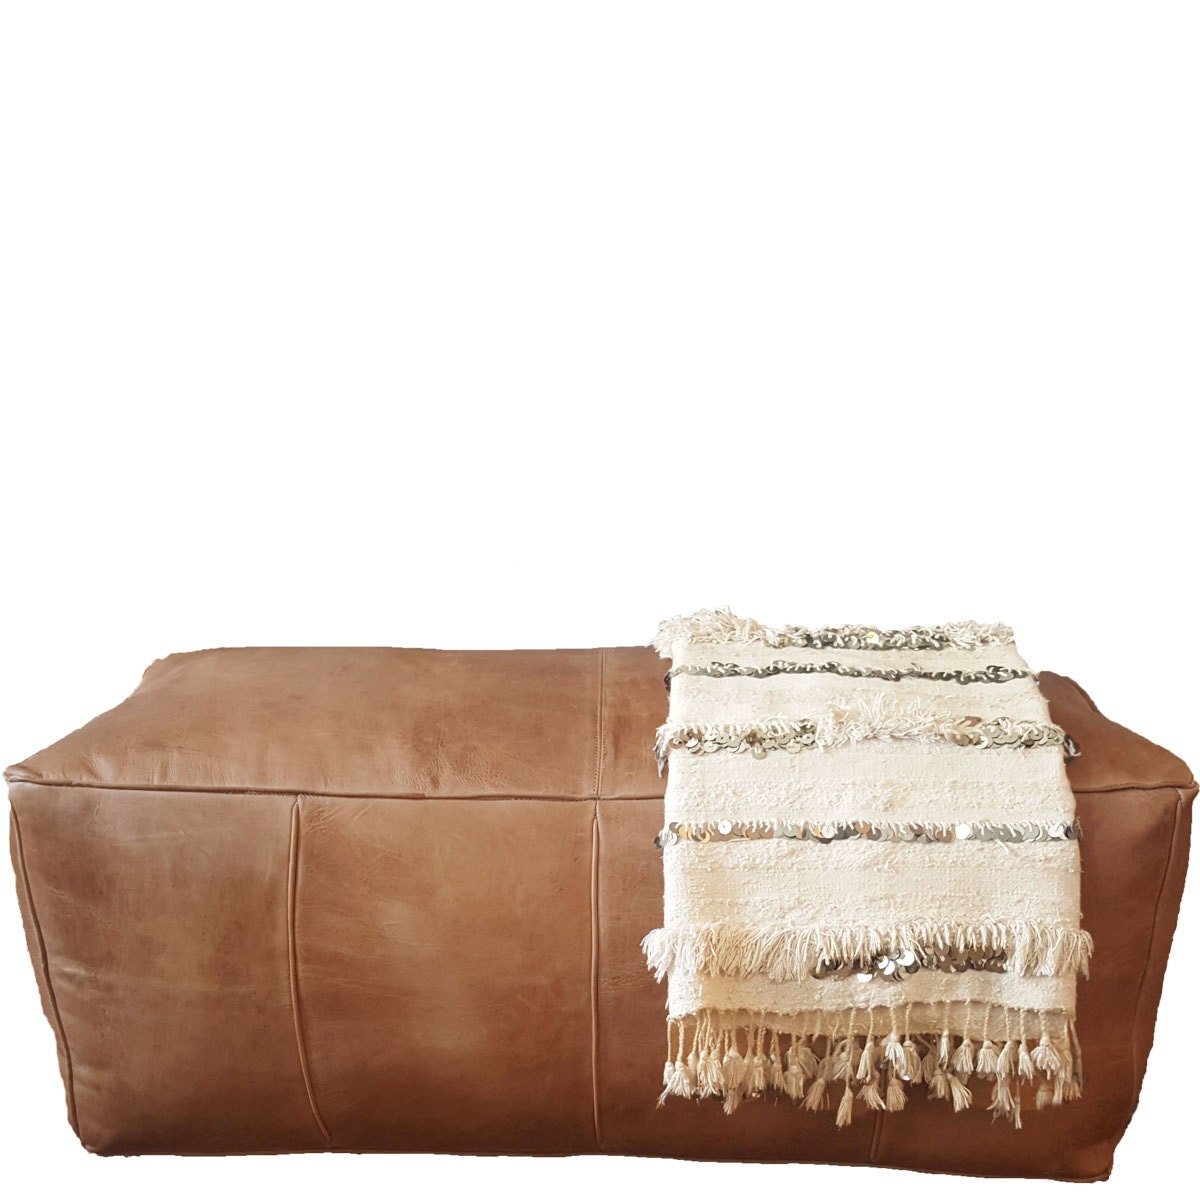 long leather pouf ottoman natural brown leather rectangle. Black Bedroom Furniture Sets. Home Design Ideas